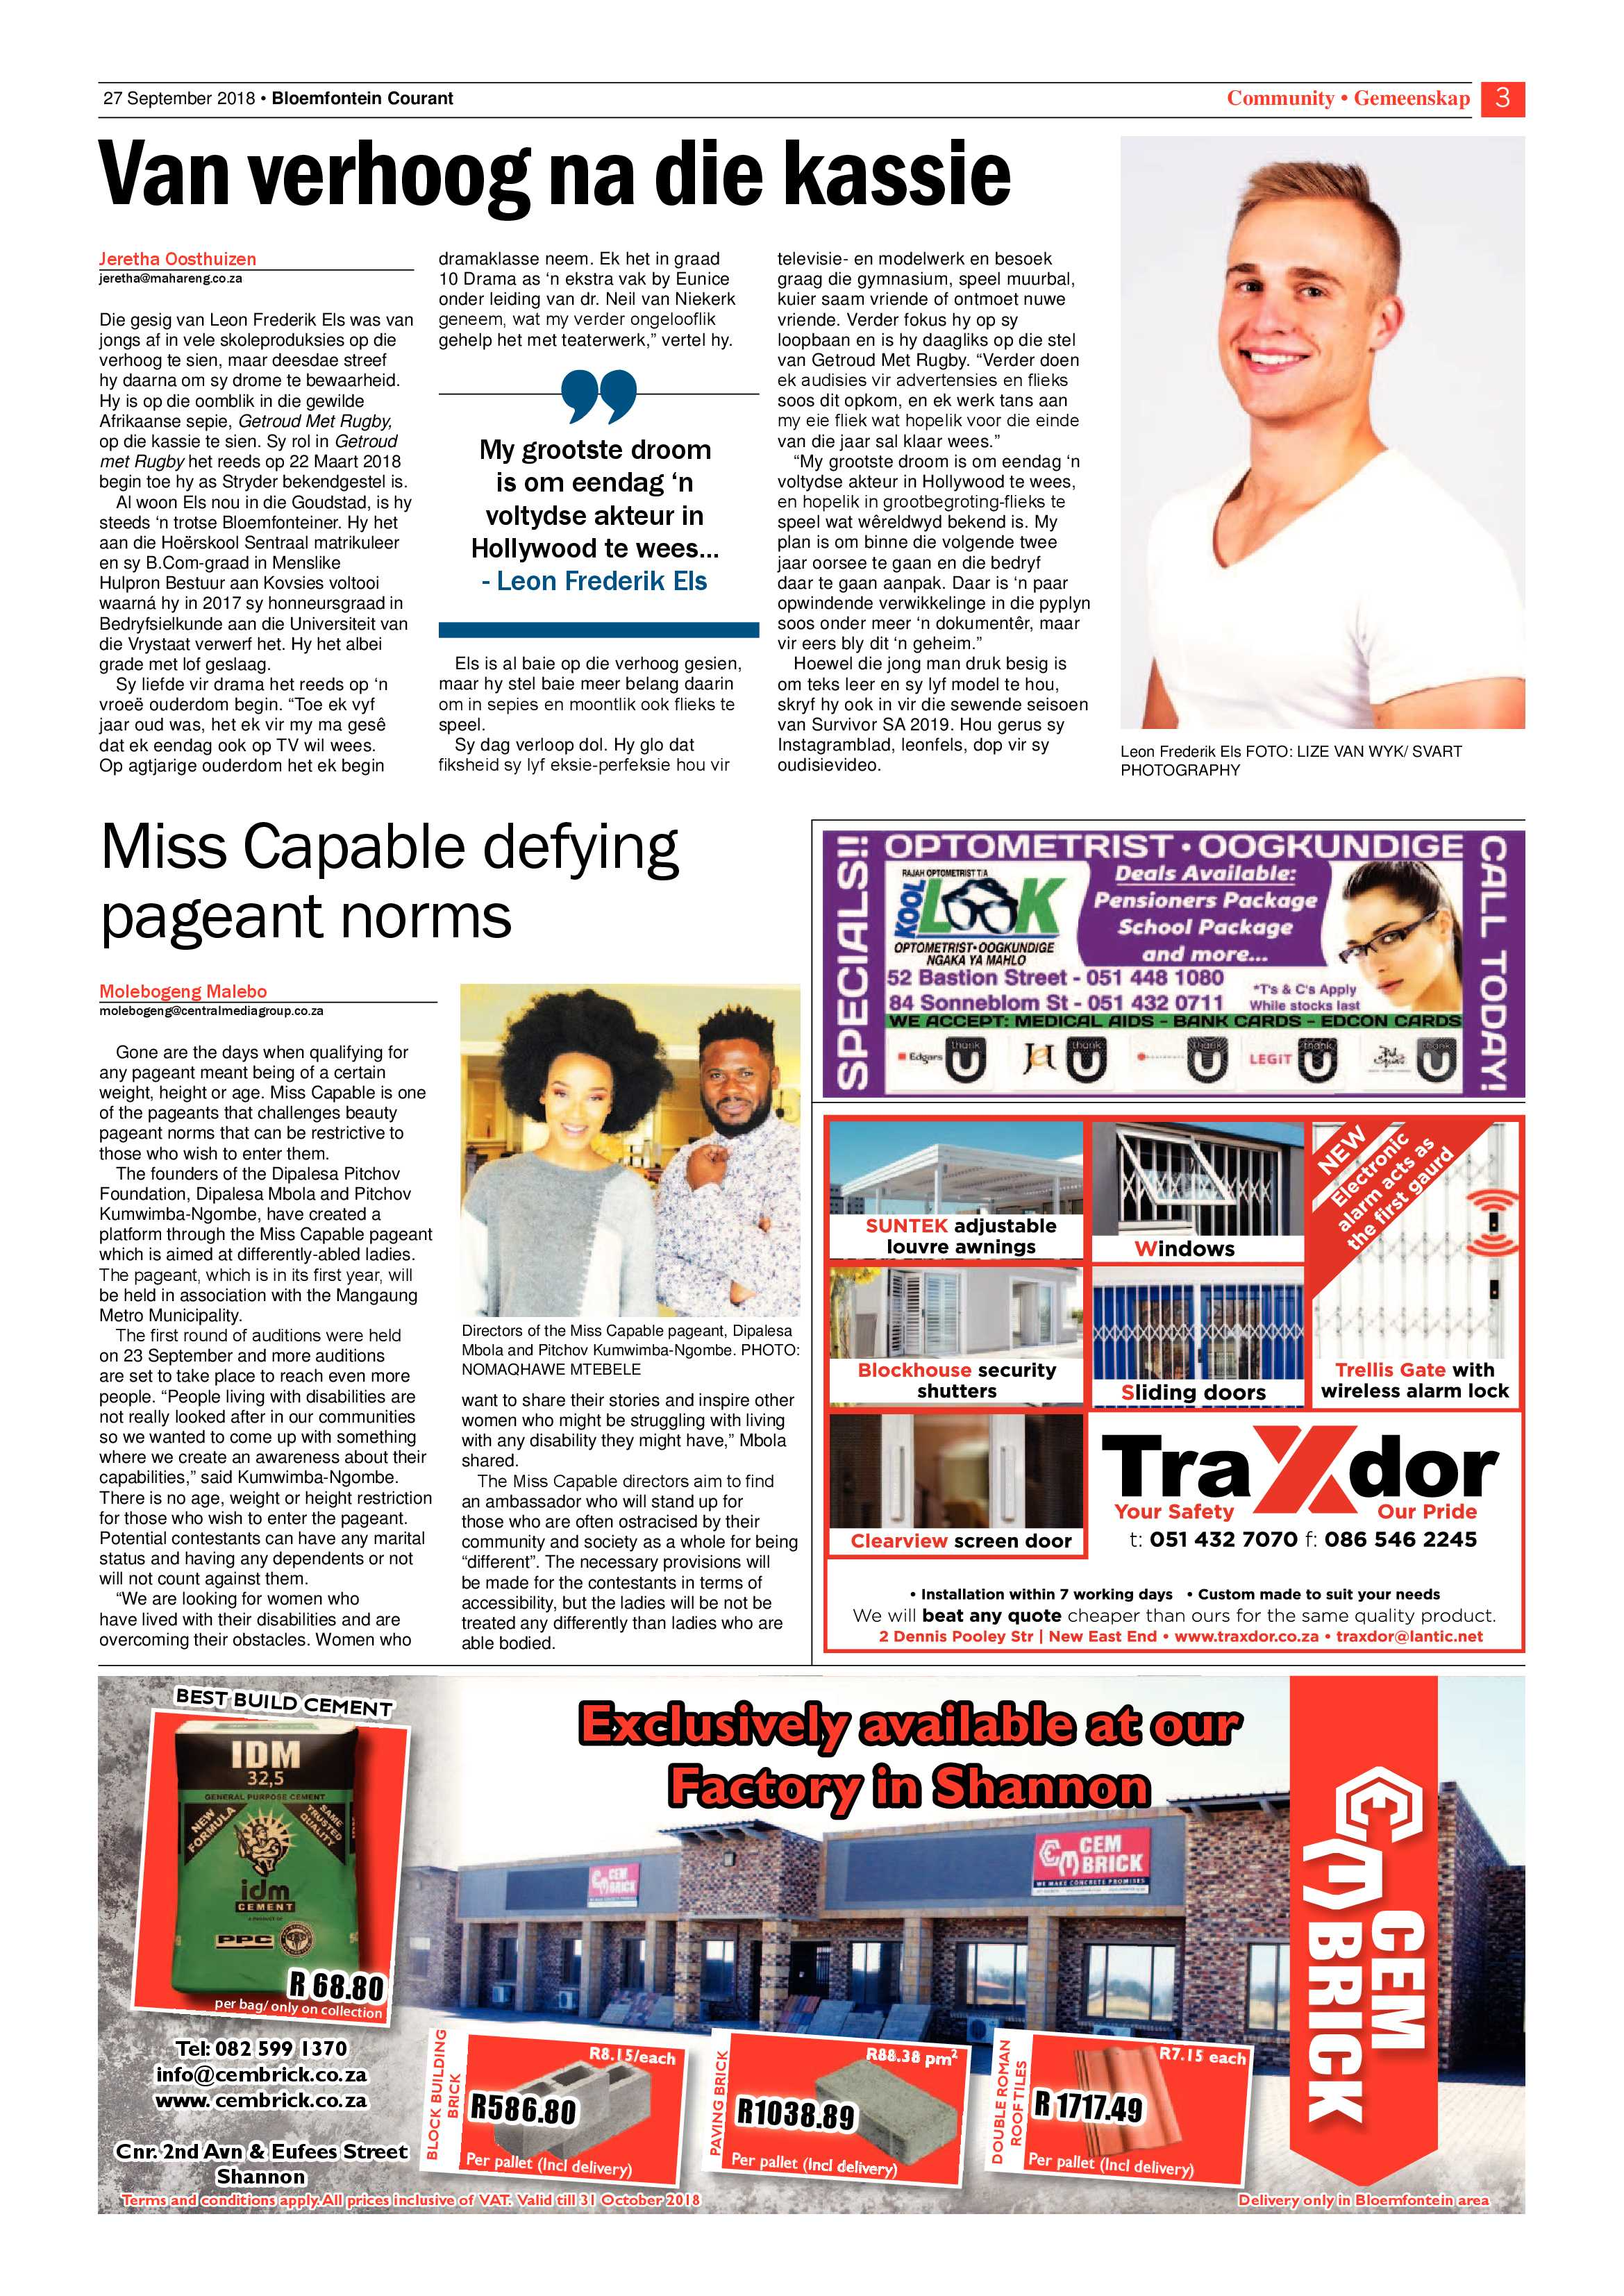 courant-27-september-2018-epapers-page-3